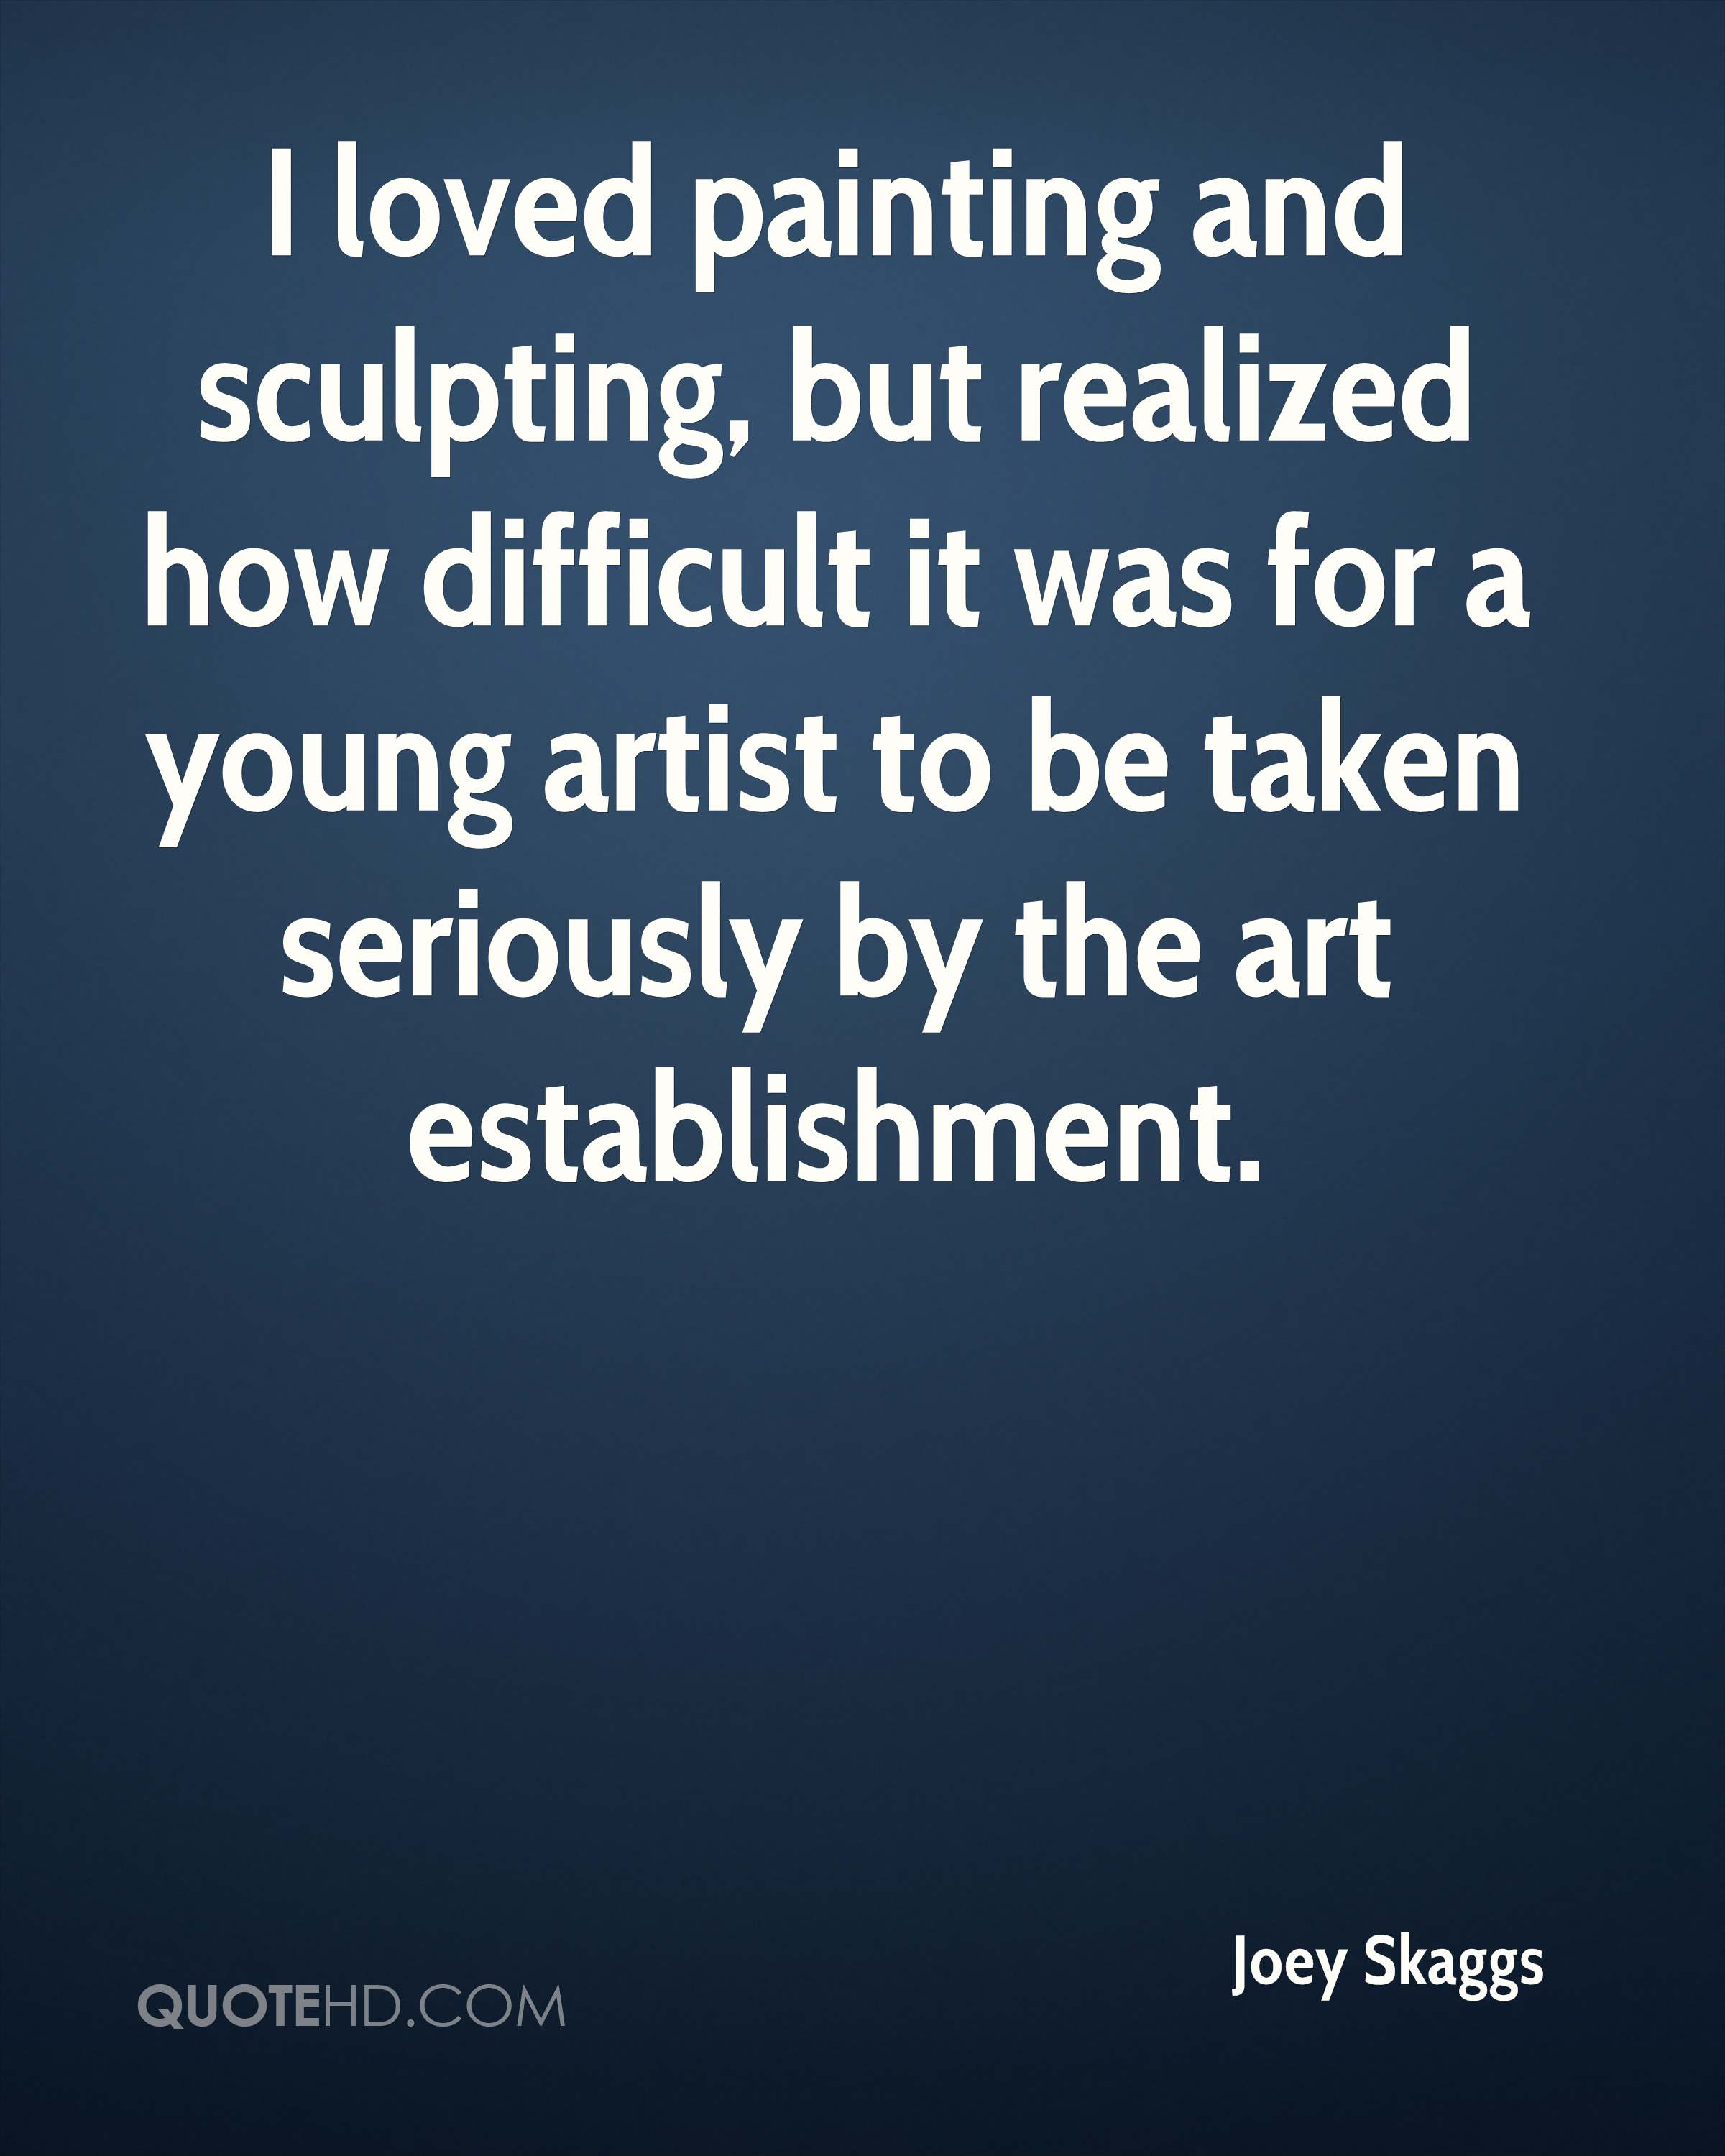 I loved painting and sculpting, but realized how difficult it was for a young artist to be taken seriously by the art establishment.